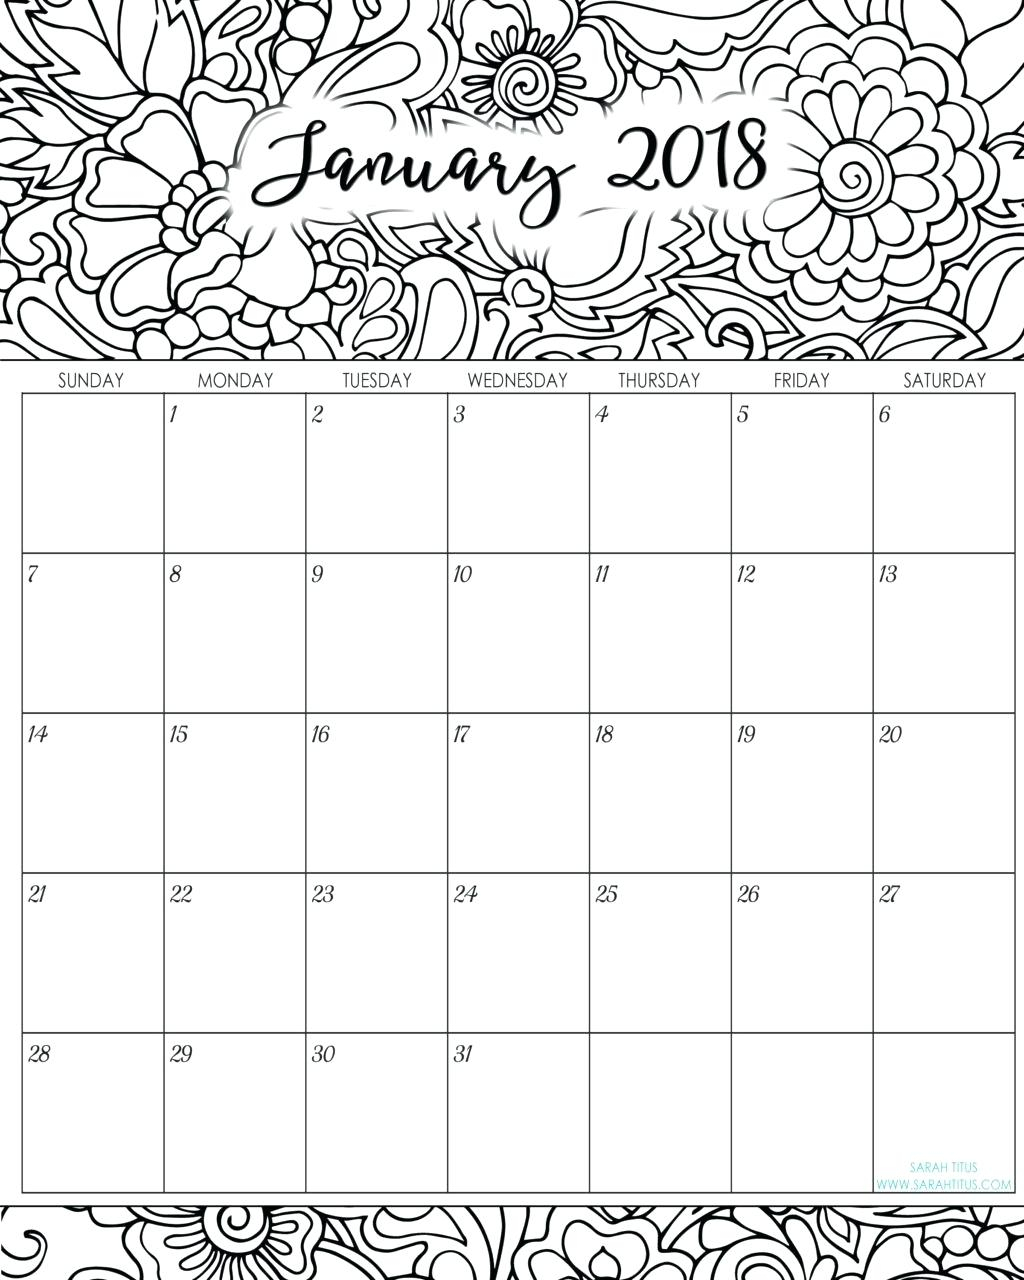 Coloring Book : Coloringalendar For Adults Free Printable